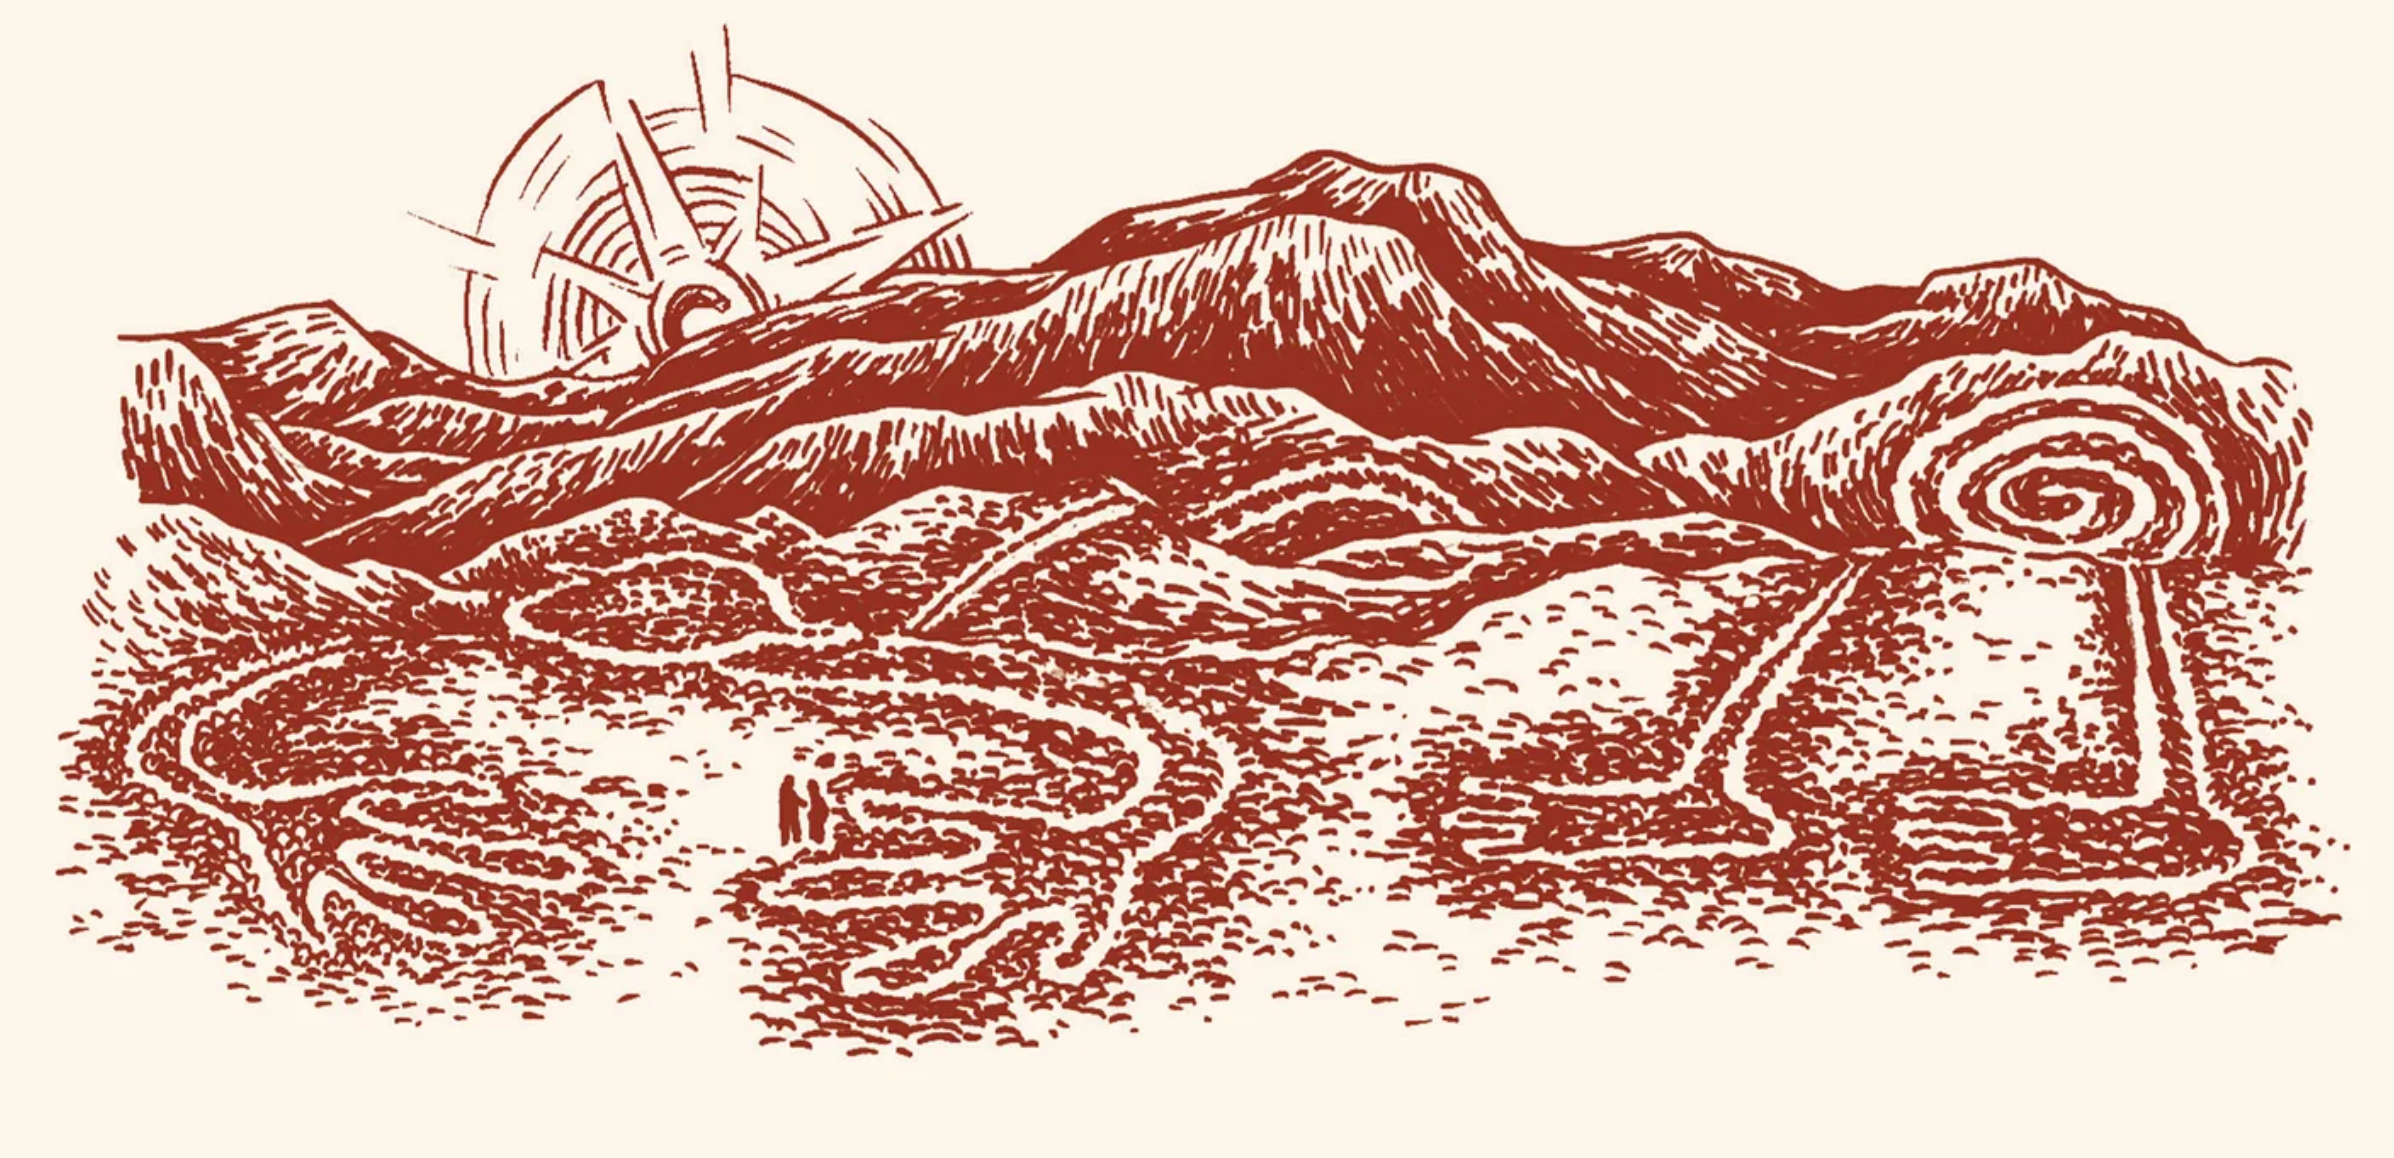 sketch of terrain with manmade lines